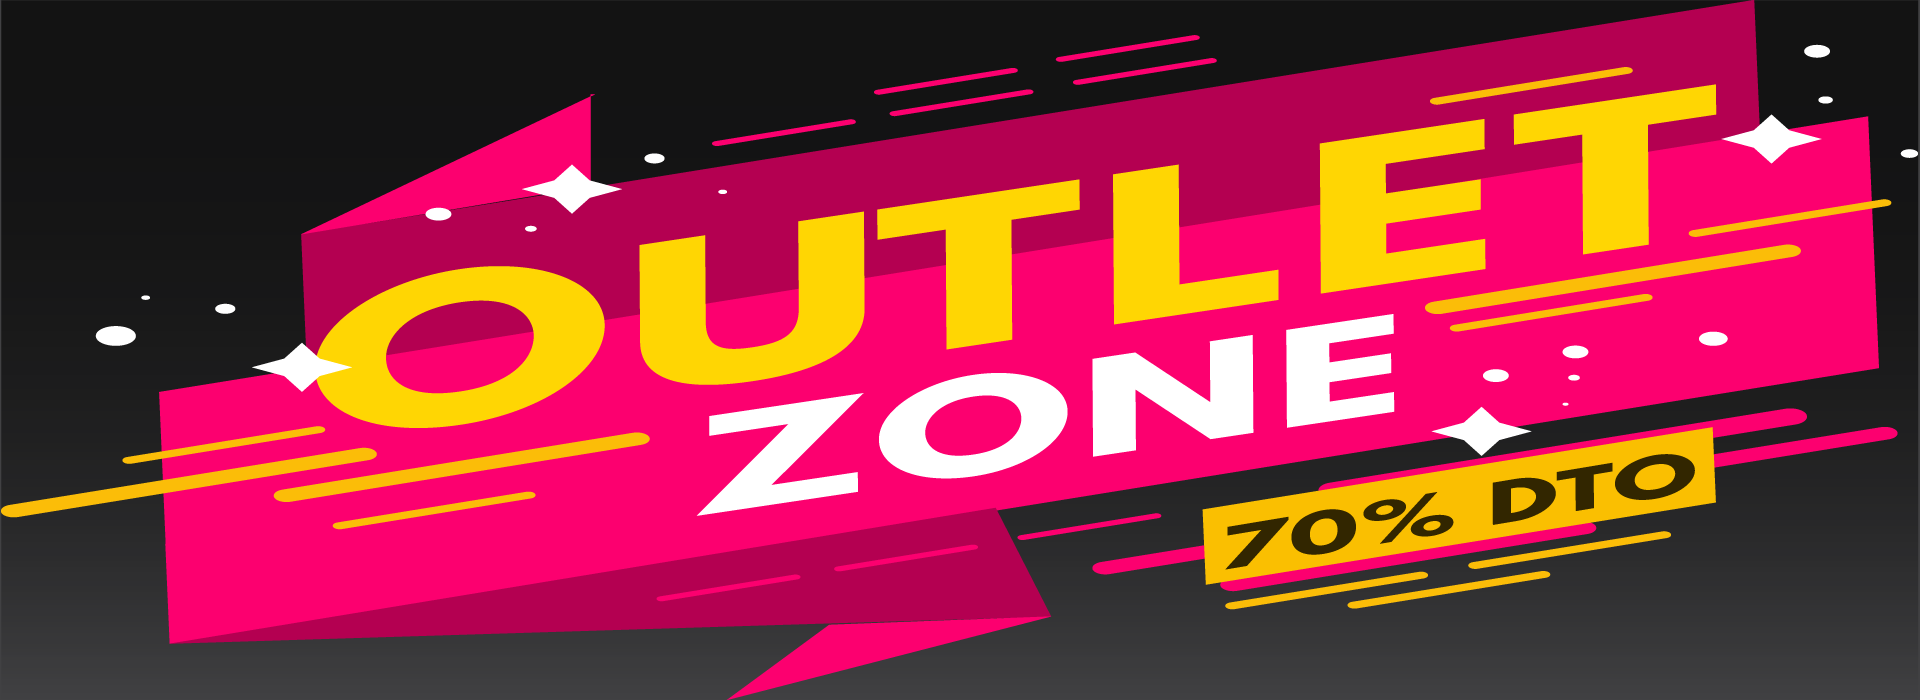 OUTLET ZONE